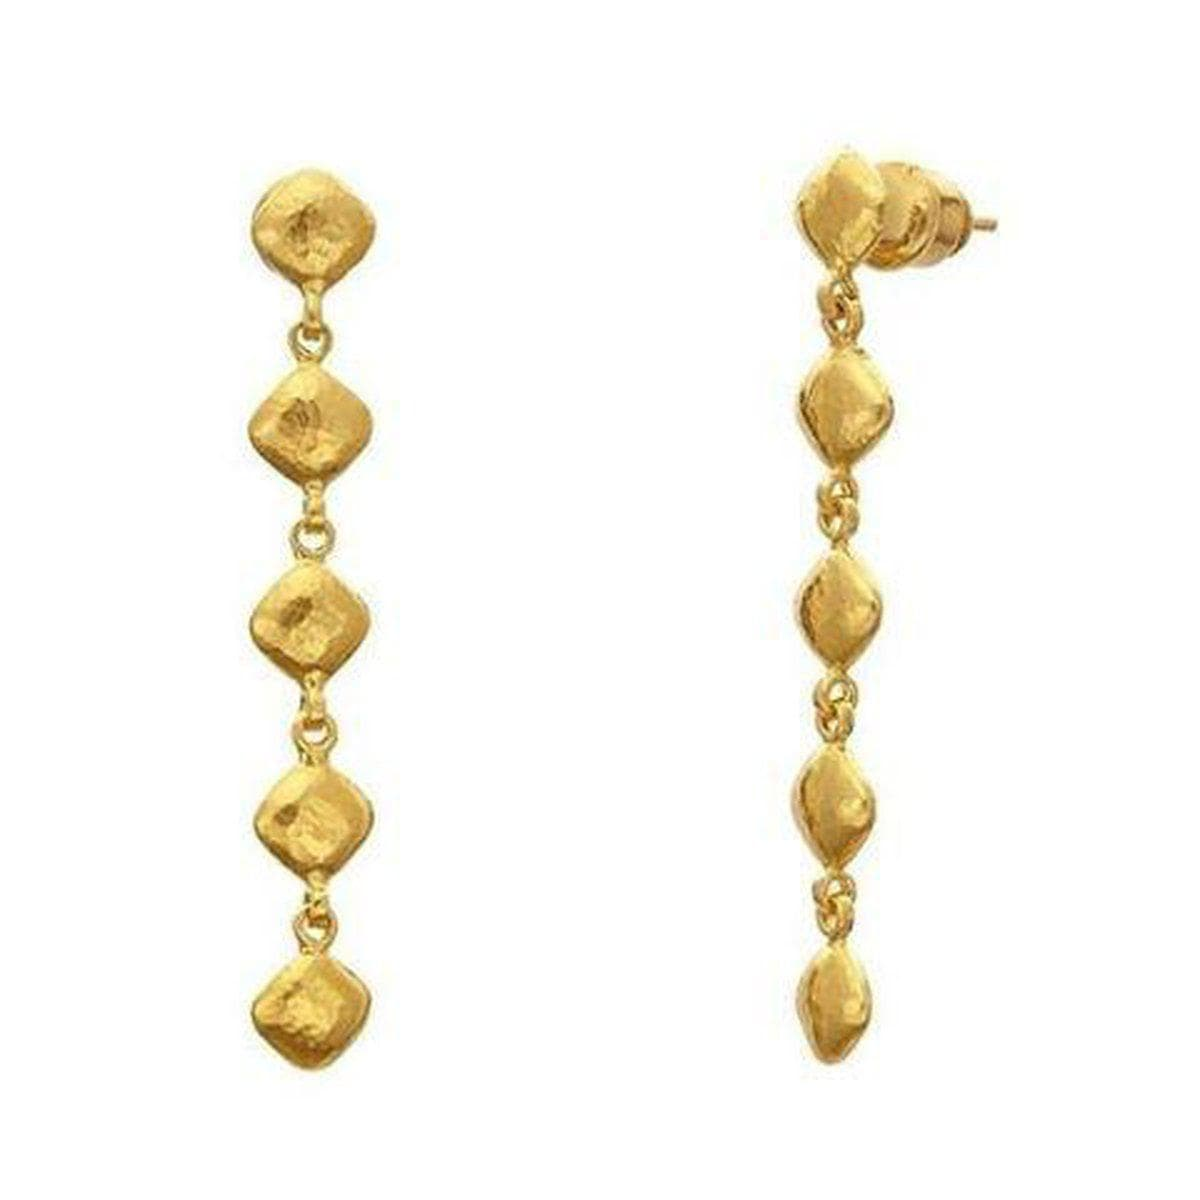 Spell 22K Gold Earrings - E-5CLT-P-GURHAN-Renee Taylor Gallery